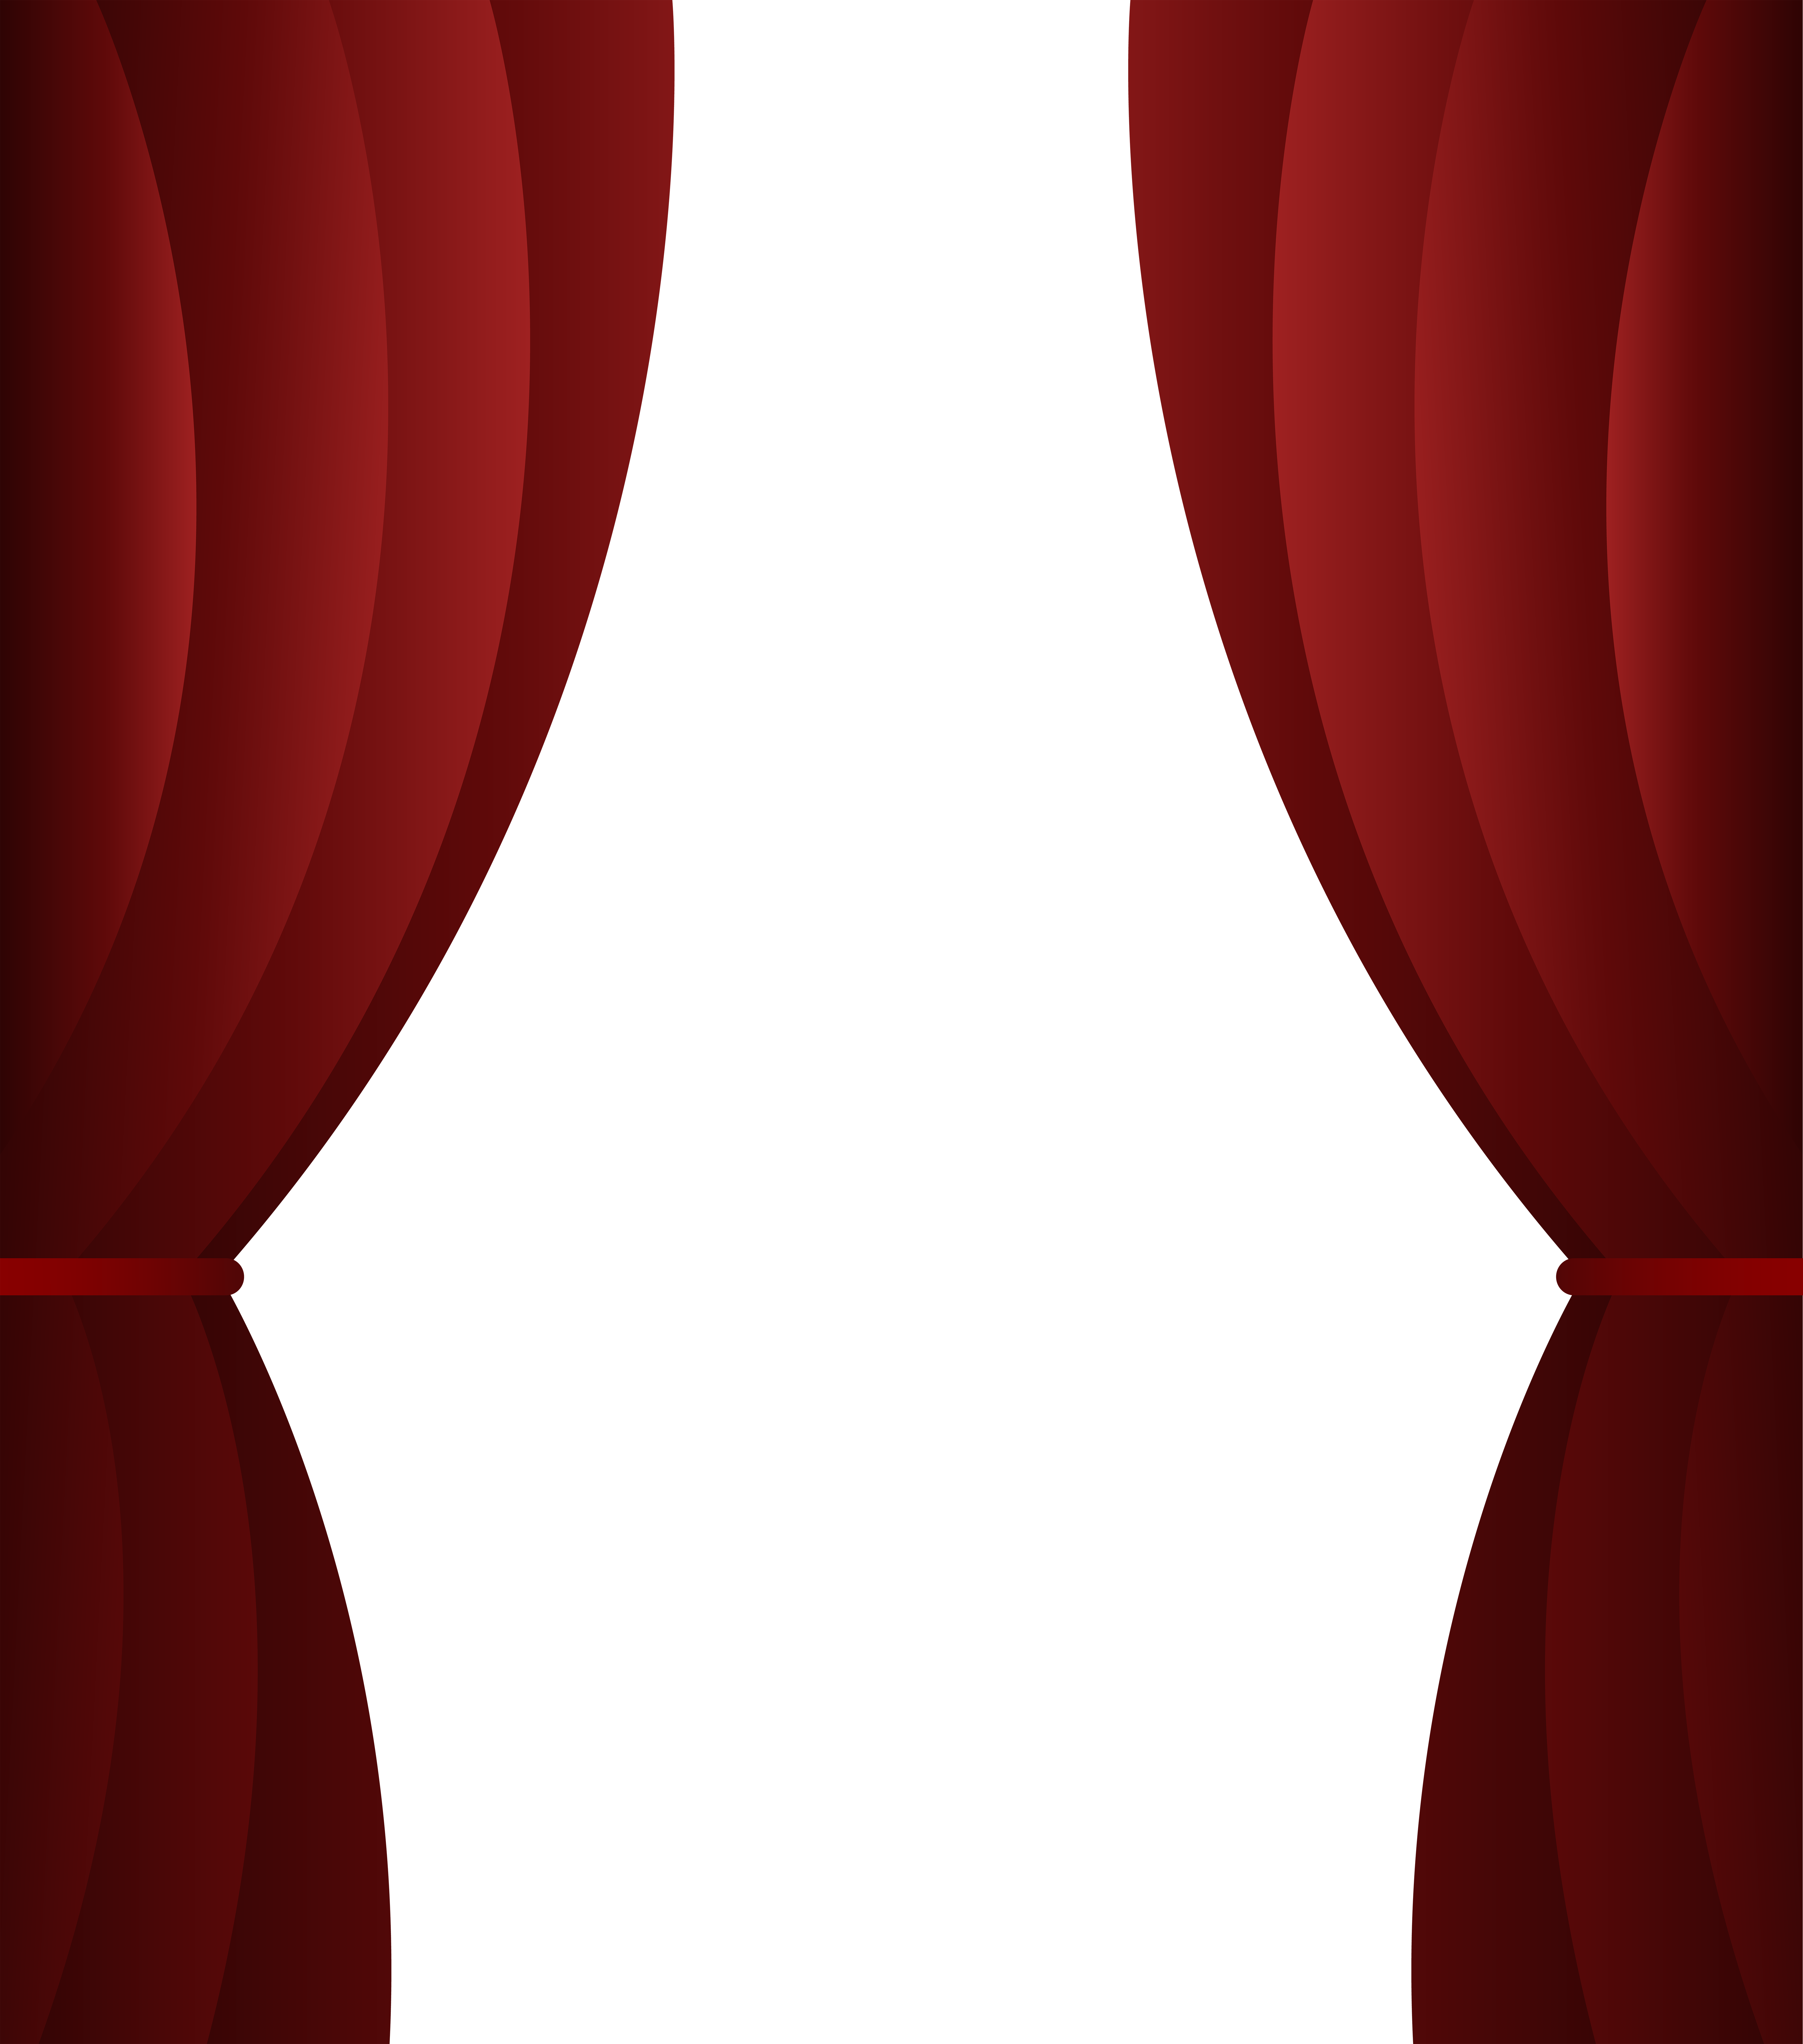 Red Curtain Transparent PNG Clip Art Image.